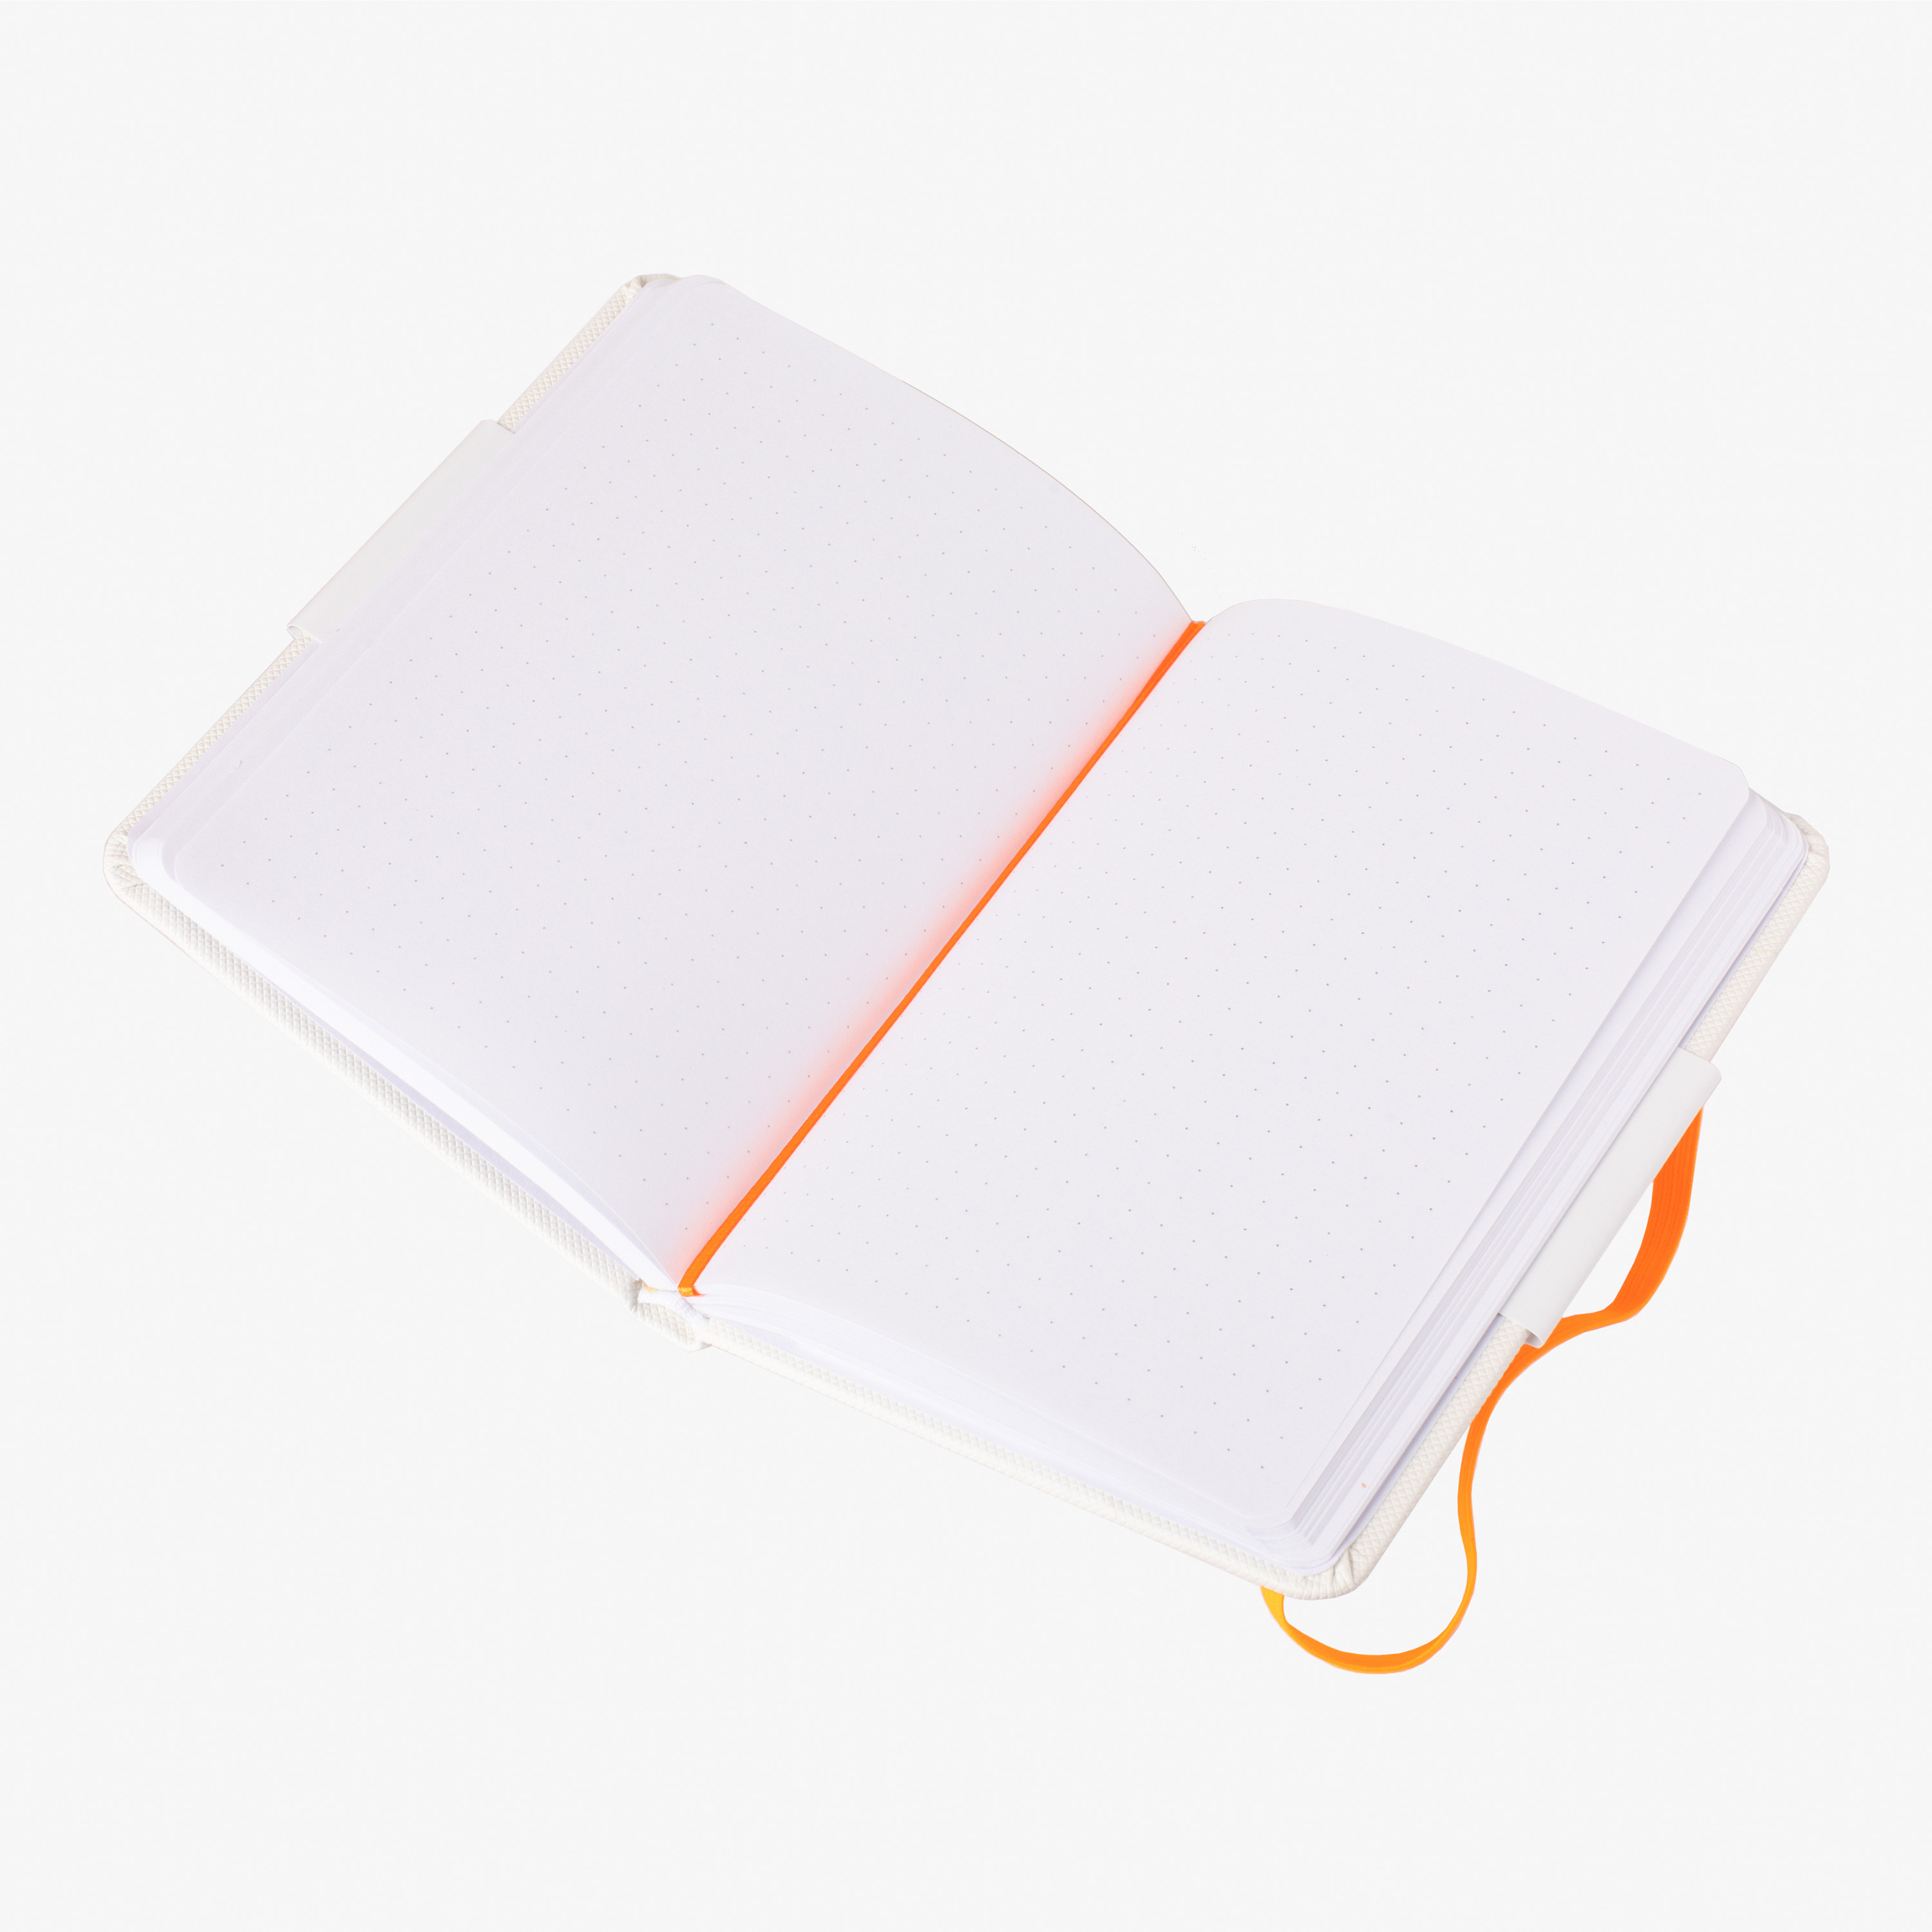 NOTEBOOK WHITE